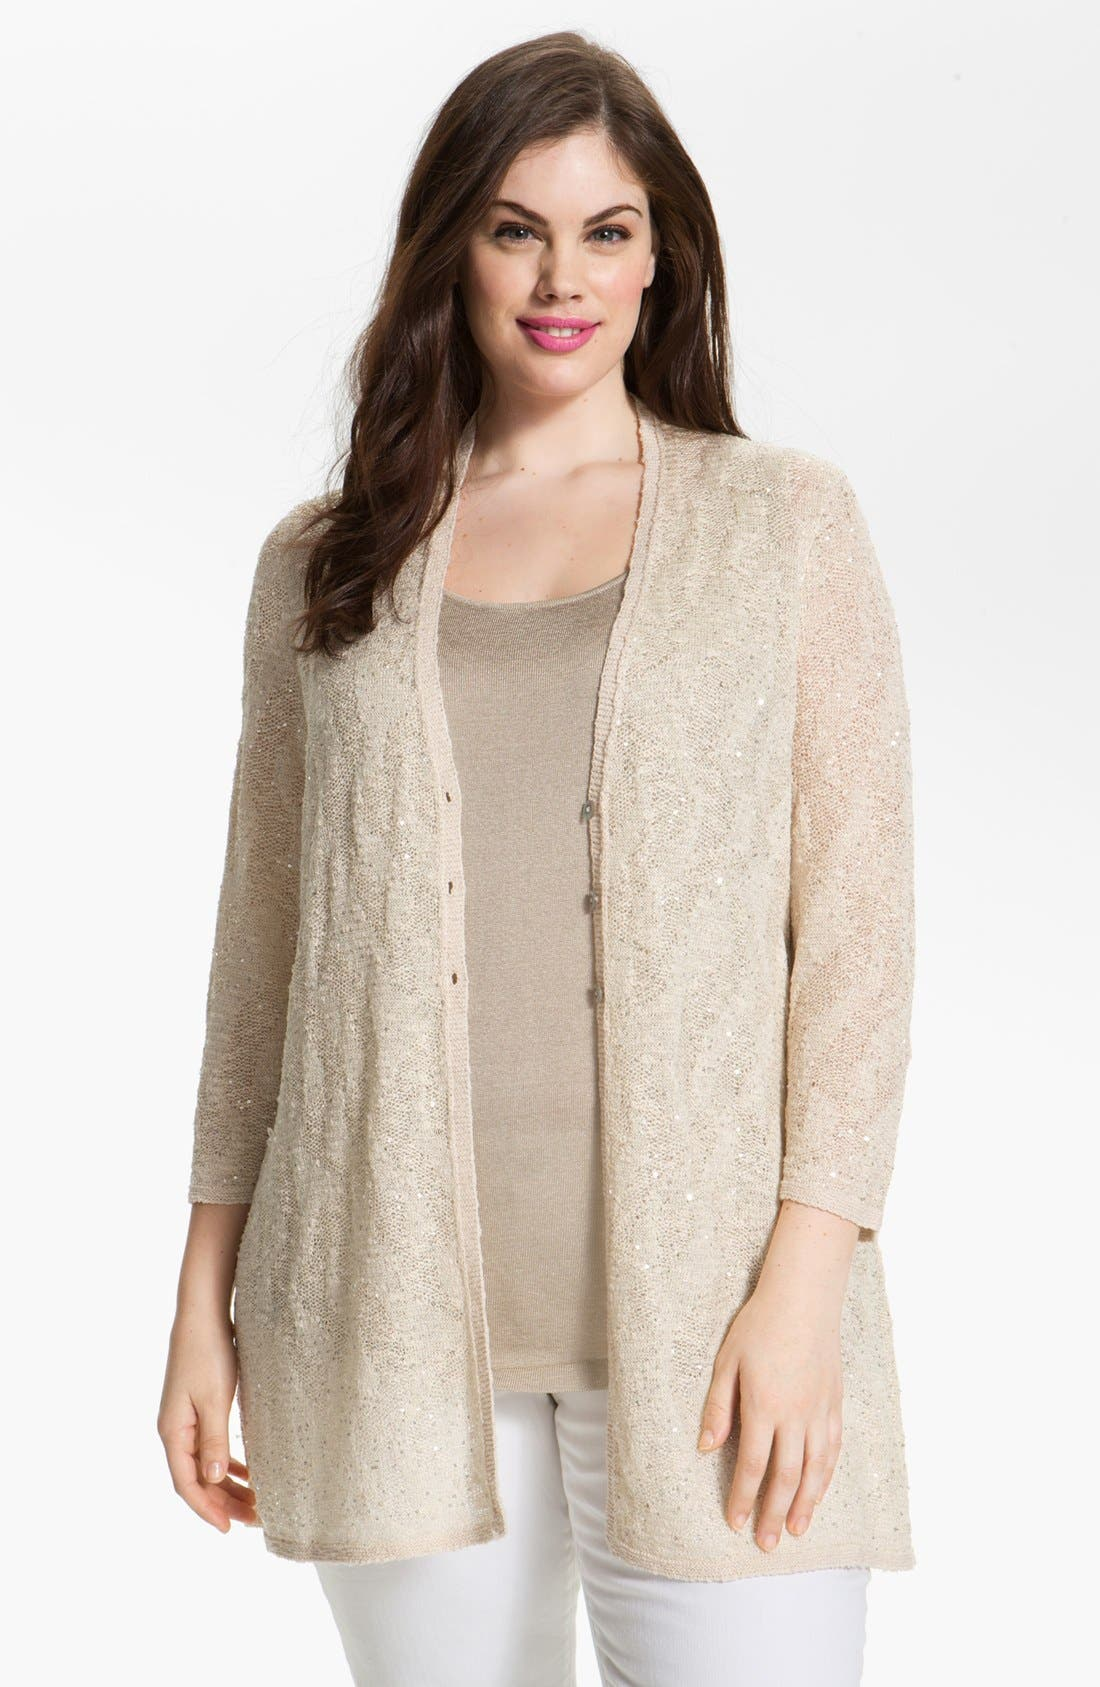 Alternate Image 1 Selected - Nic + Zoe 'Sparkling Skies' Embellished Cardigan (Plus Size)